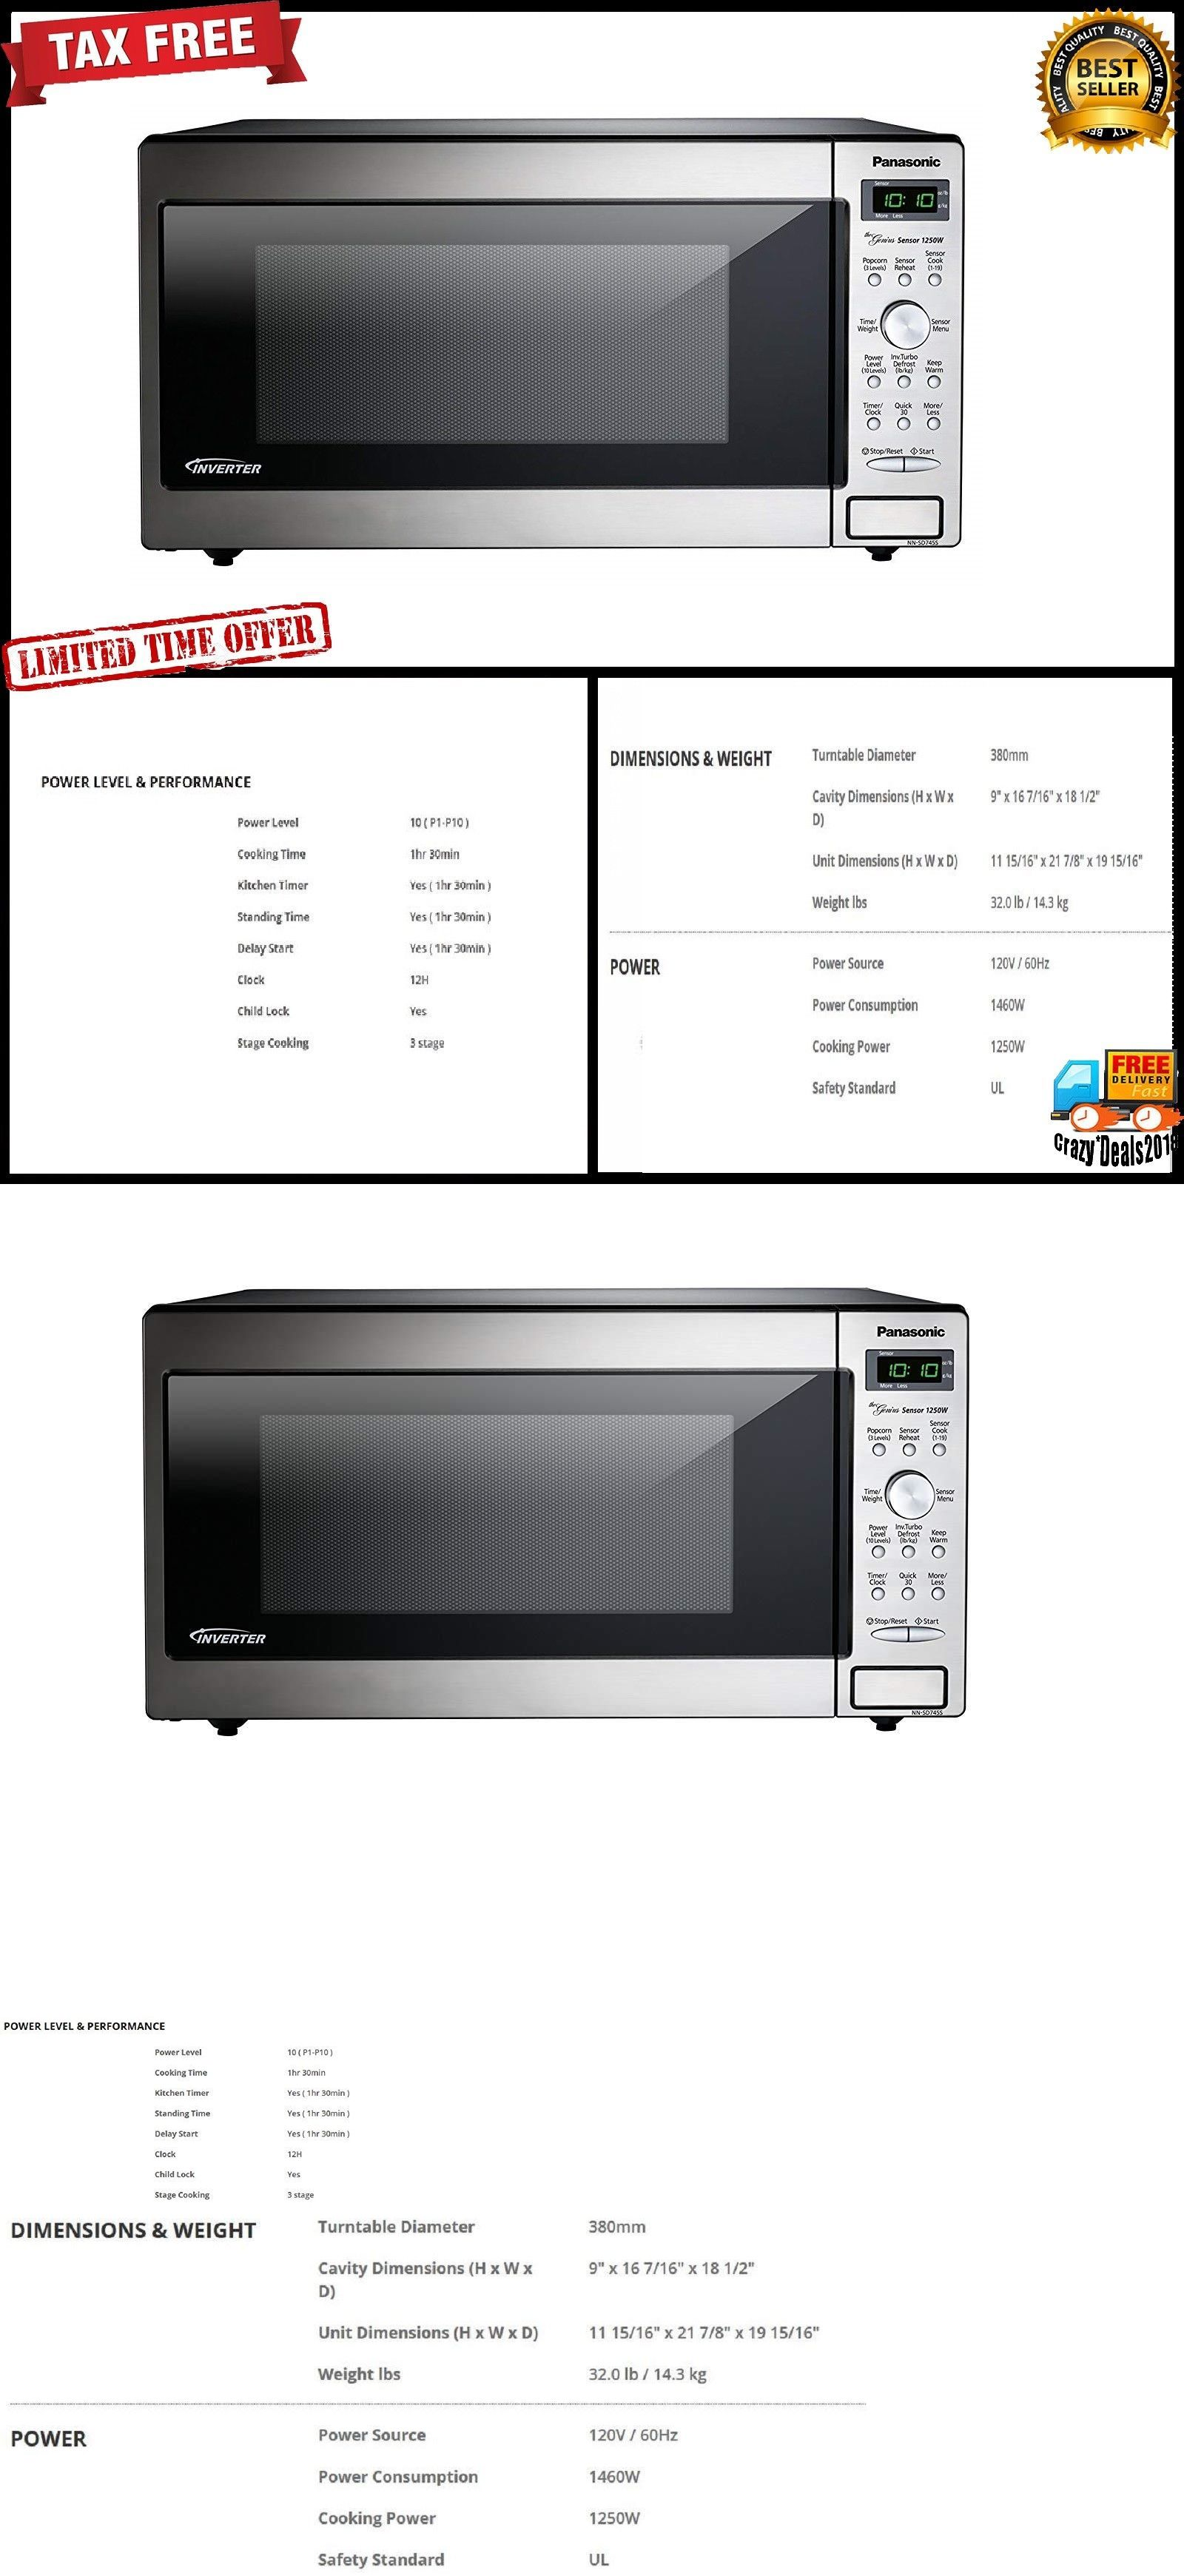 Microwave Ovens 150140 Panasonic Built In Microwave Oven Food Cooking 1250 Watt Kitchen Led Display Buy It Now Only 149 Built In Microwave Built In Microwave Oven Microwave Oven